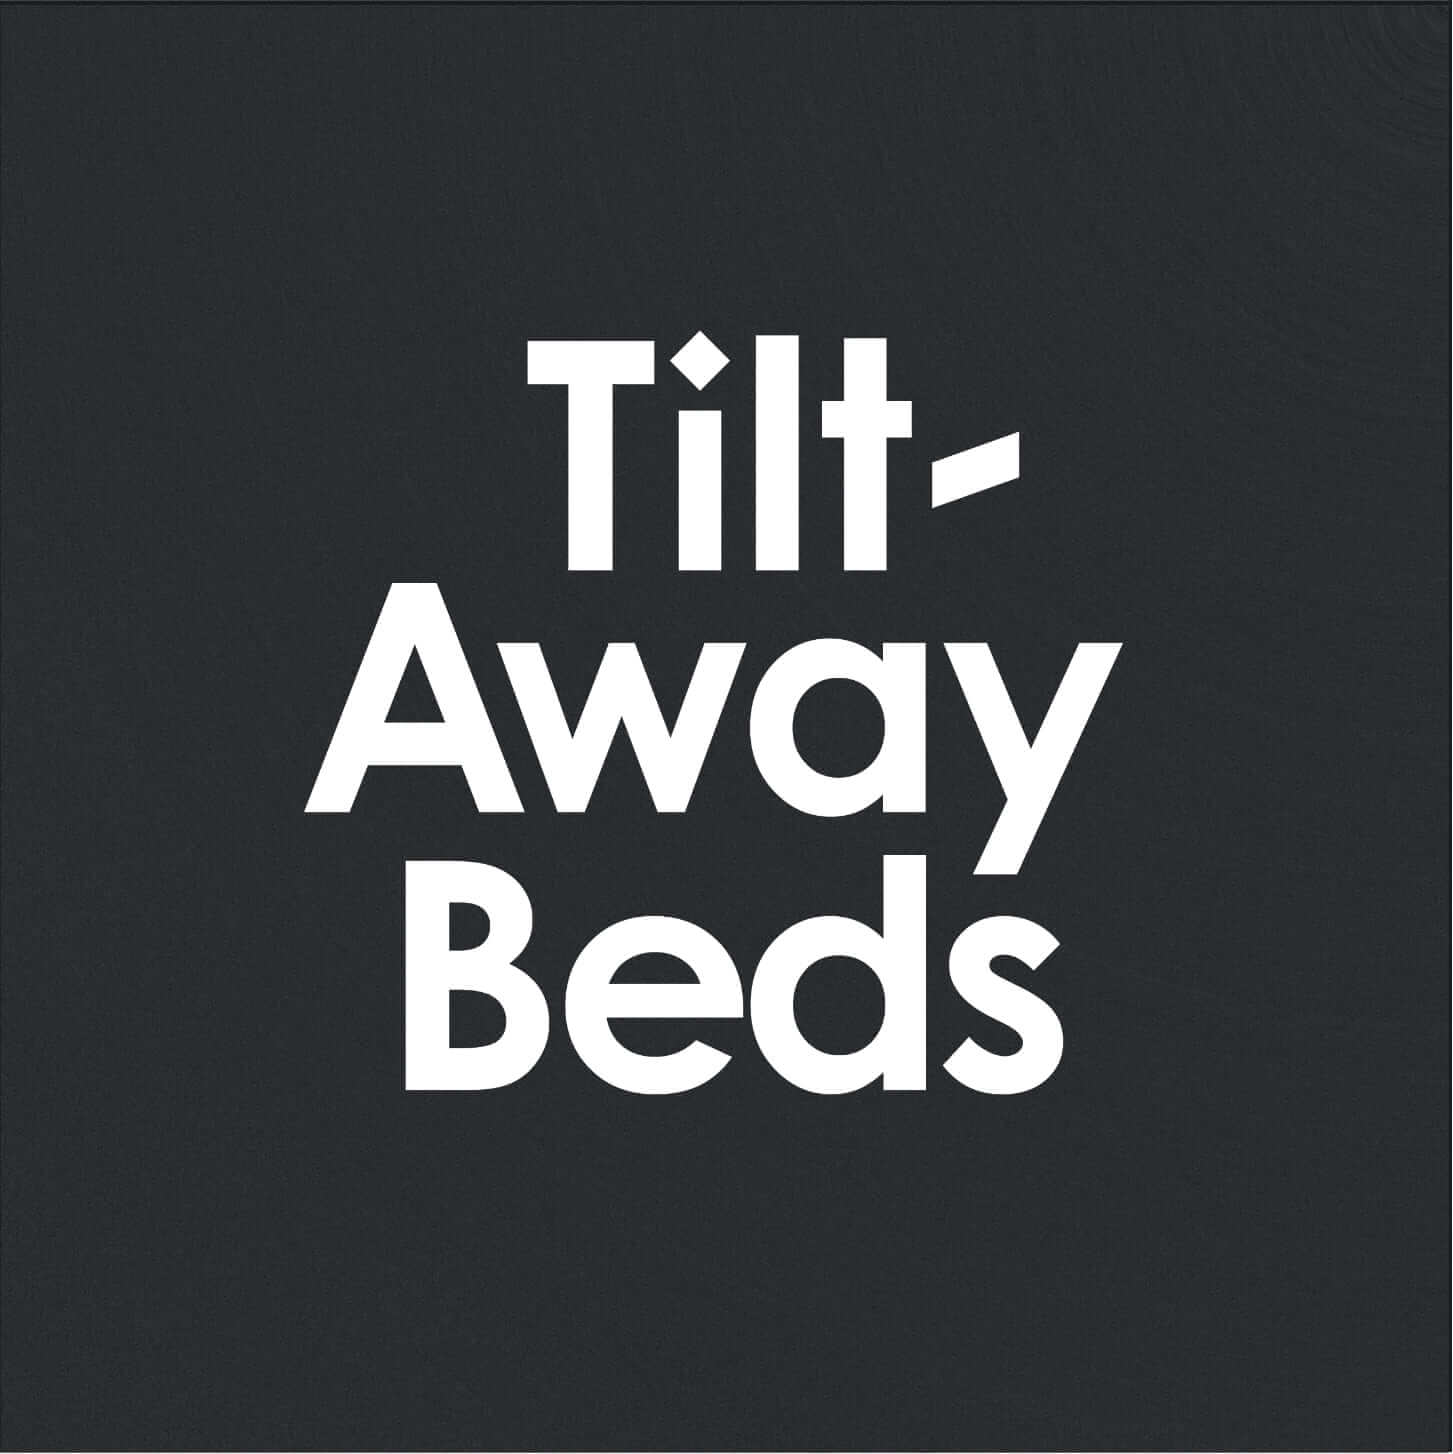 Tiltaway Beds Tilt Away Beds Three Scoops